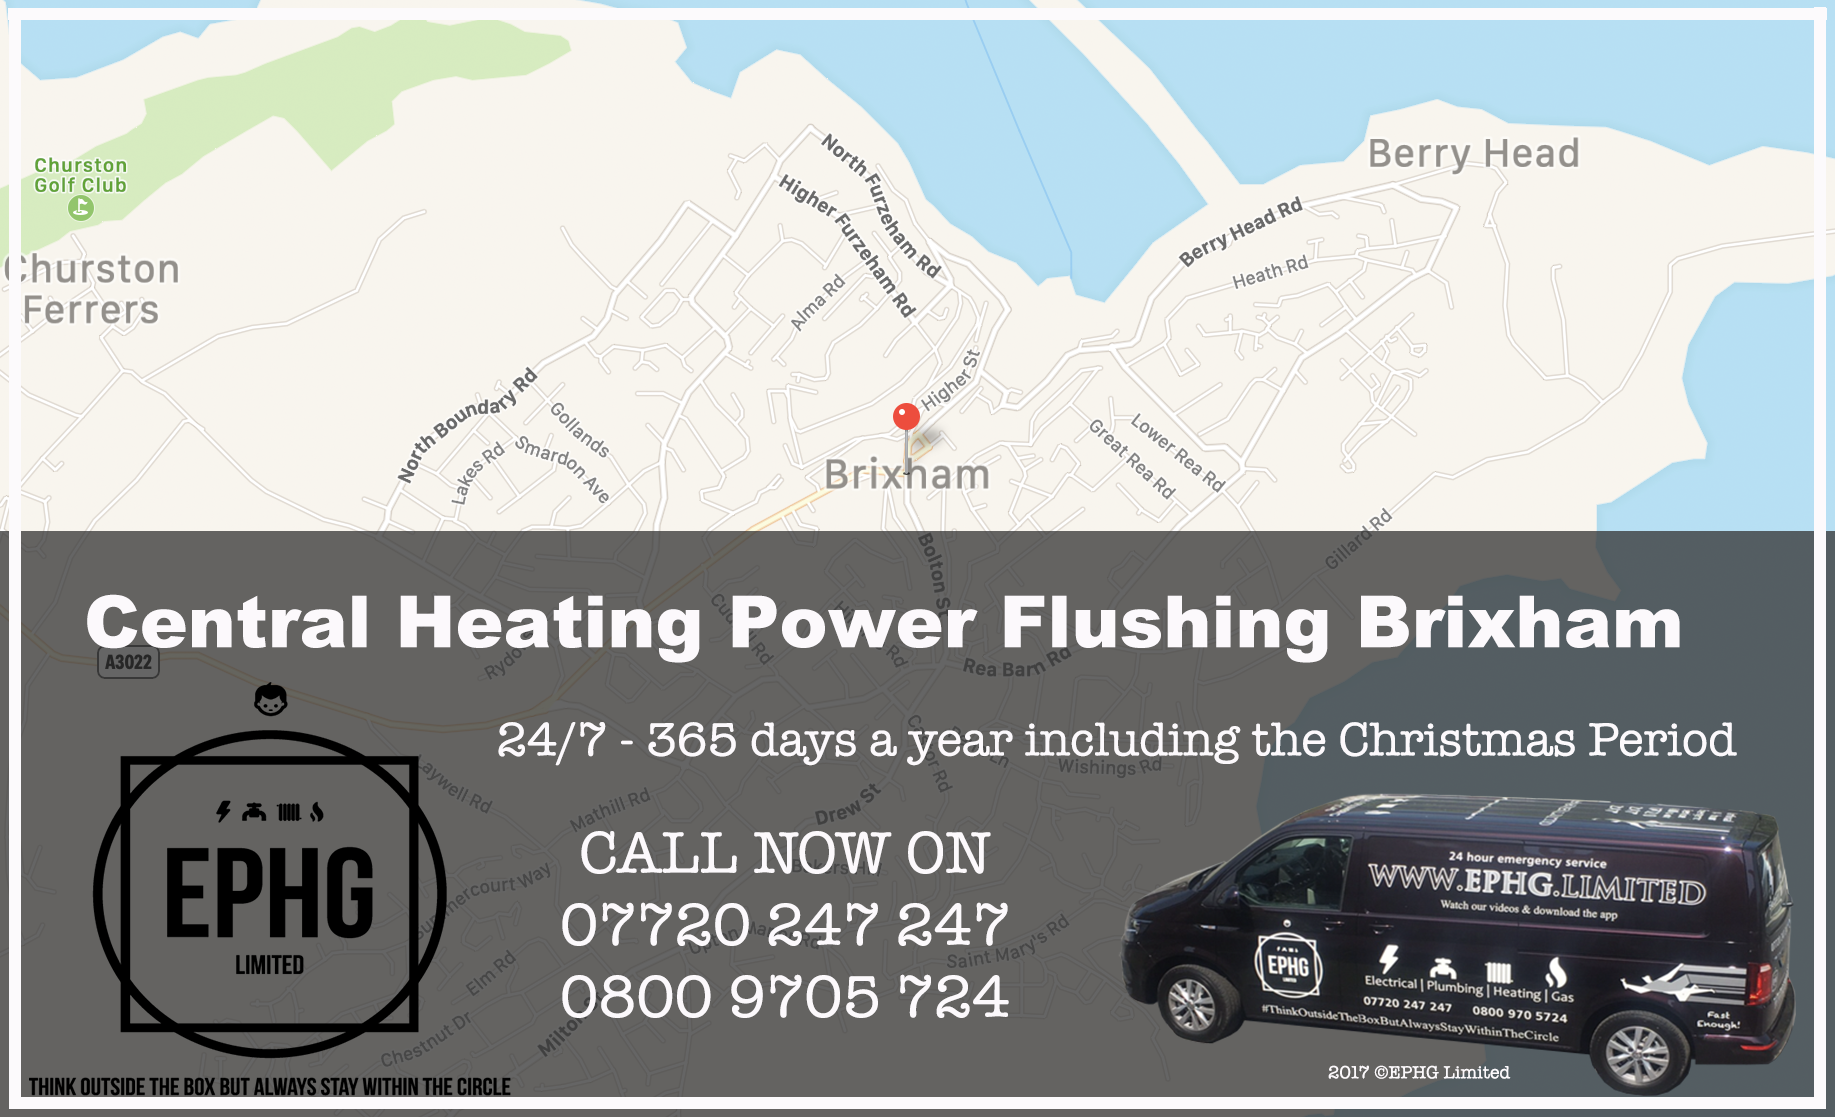 Central Heating Power Flush Brixham